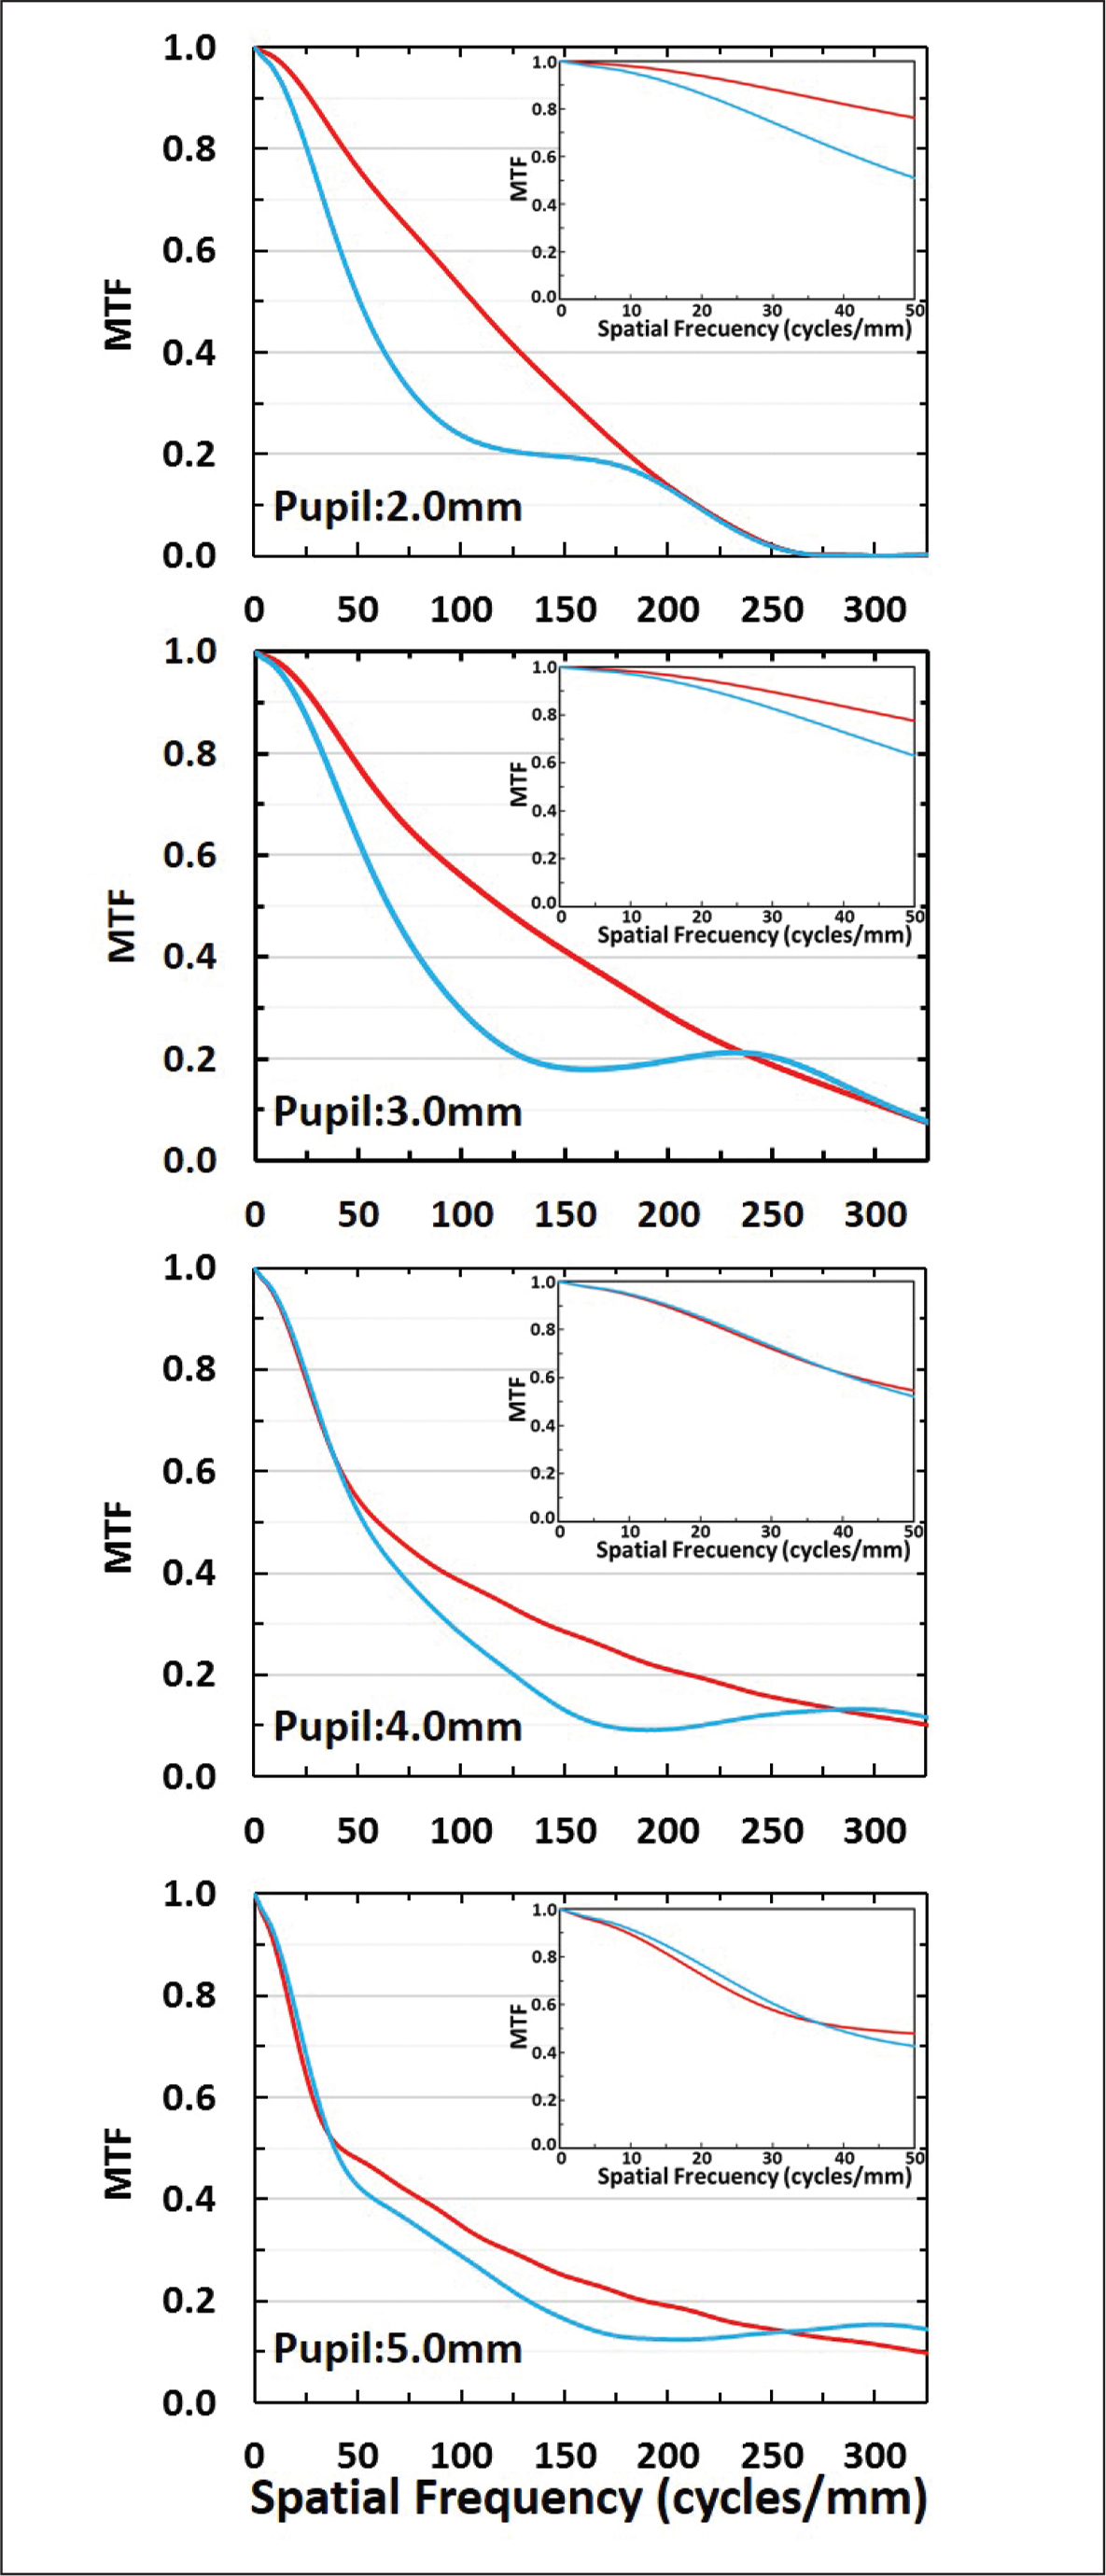 Modulation transfer function (MTF) curves for intraocular lens (IOL)-pupil sizes ranging from 2 to 5 mm at the best focus of the (red) ZCB-IOL and (blue) ICB-IOL (Johnson & Johnson Vision, Inc). The inserts show the MTF curves in the range of spatial frequencies (0 to 50 cycles/mm) used to compute the area under the modulation transfer function (MTFa) metric.